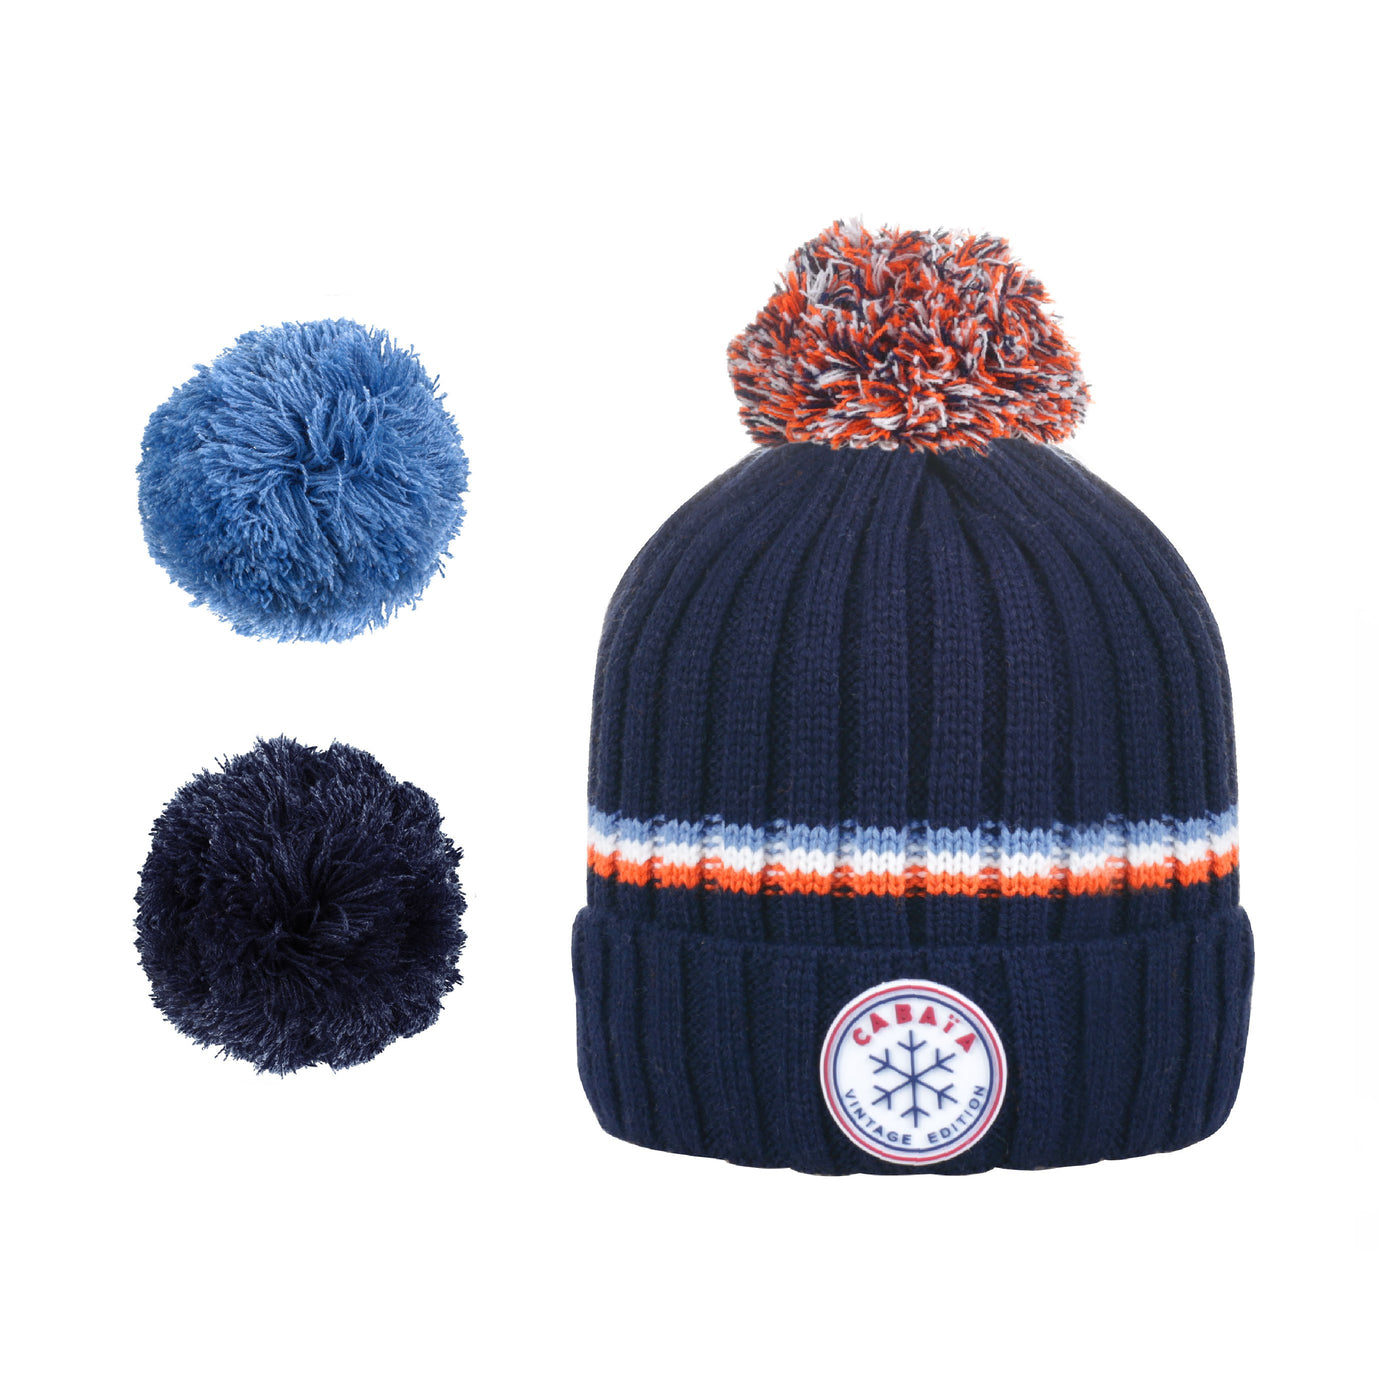 Mütze cabaia pompon français homme femme made in france navy